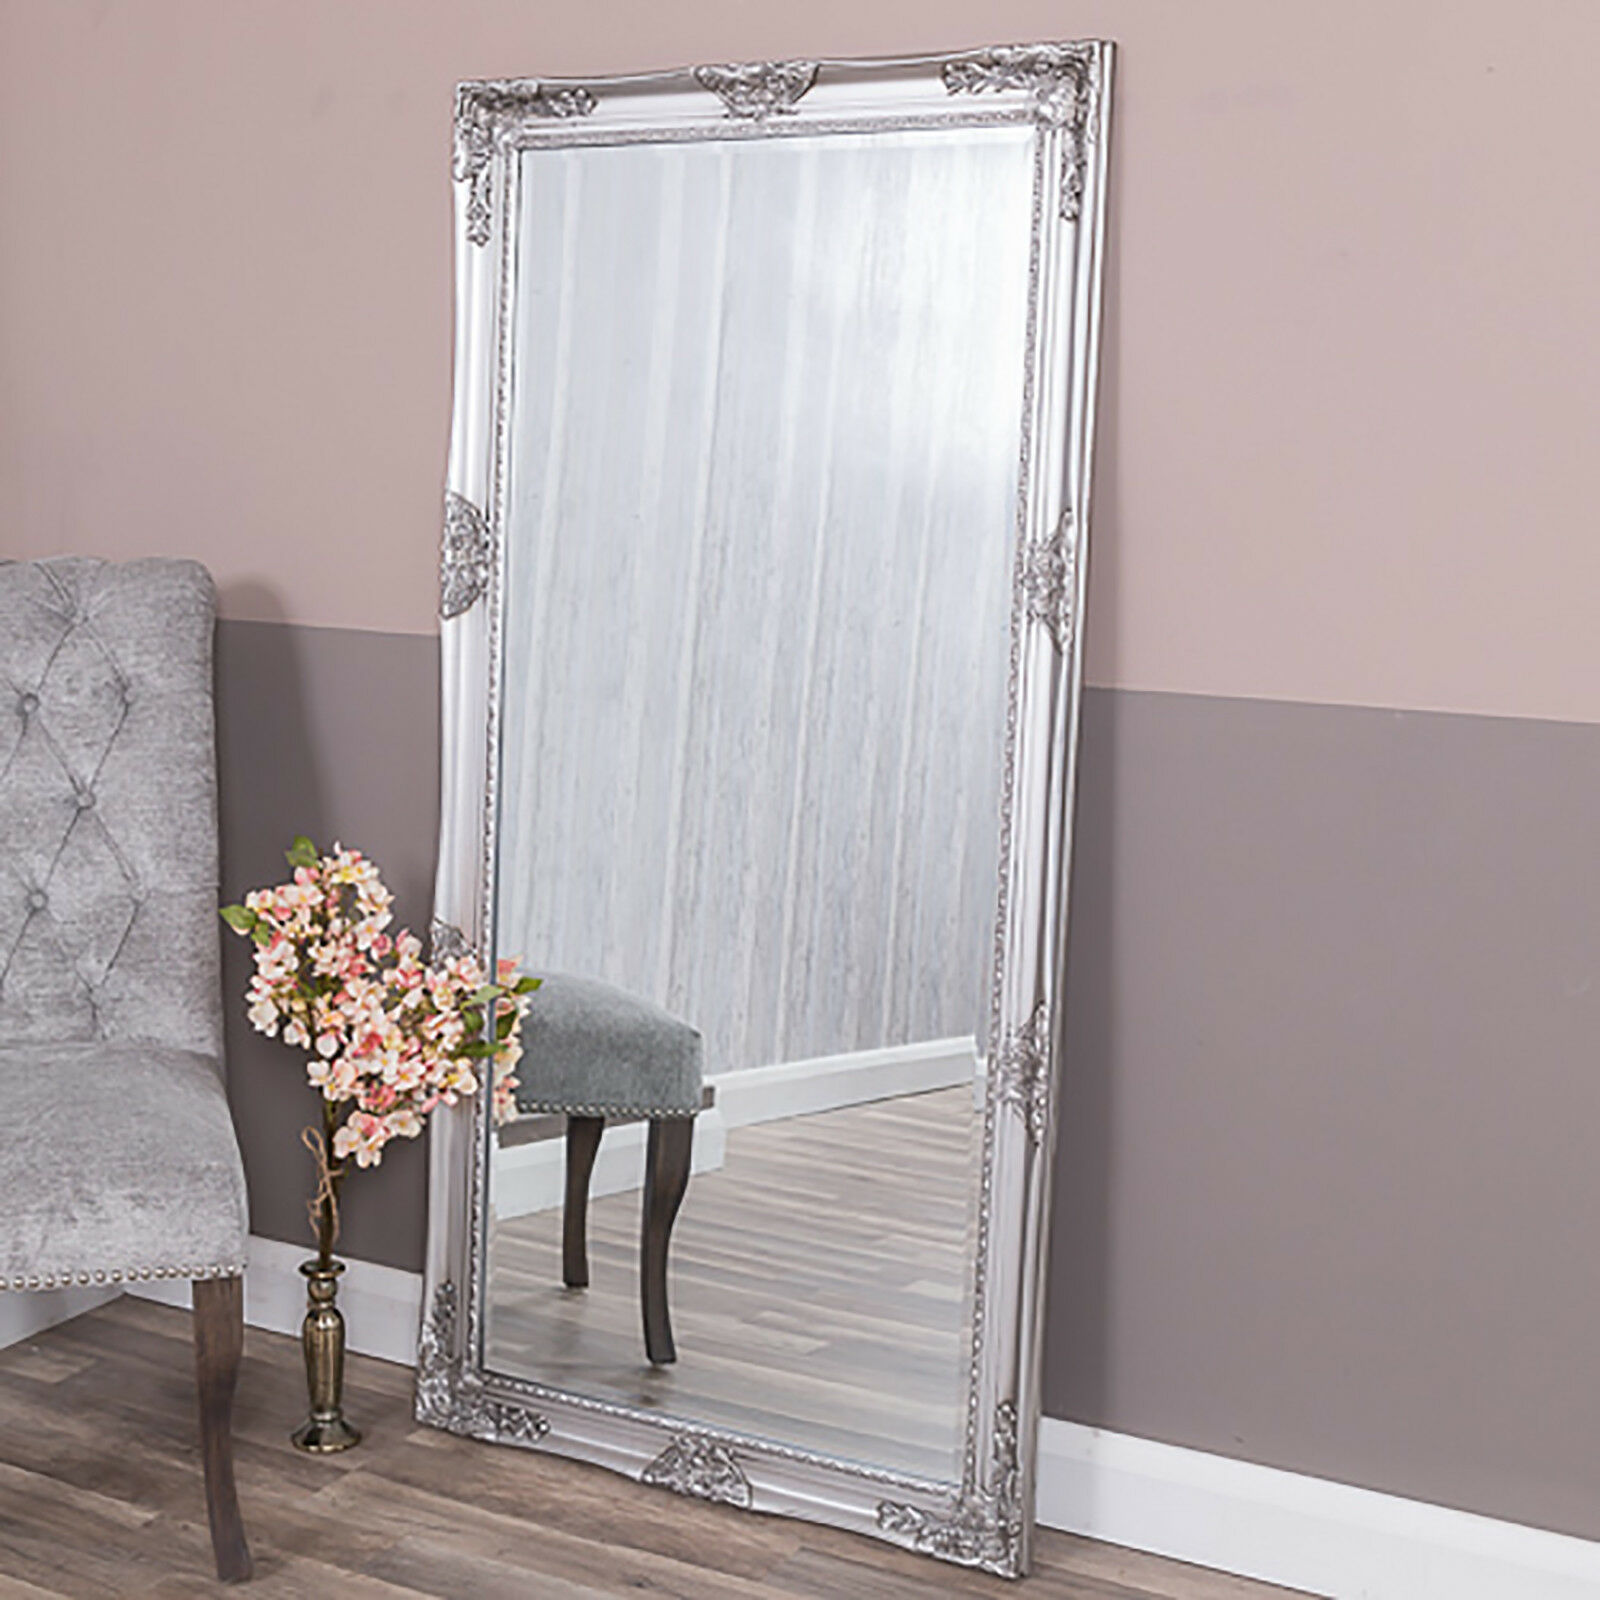 Tall Bedroom Wall Mirror: Extra Large Silver Wall Floor French Ornate Mirror Bedroom